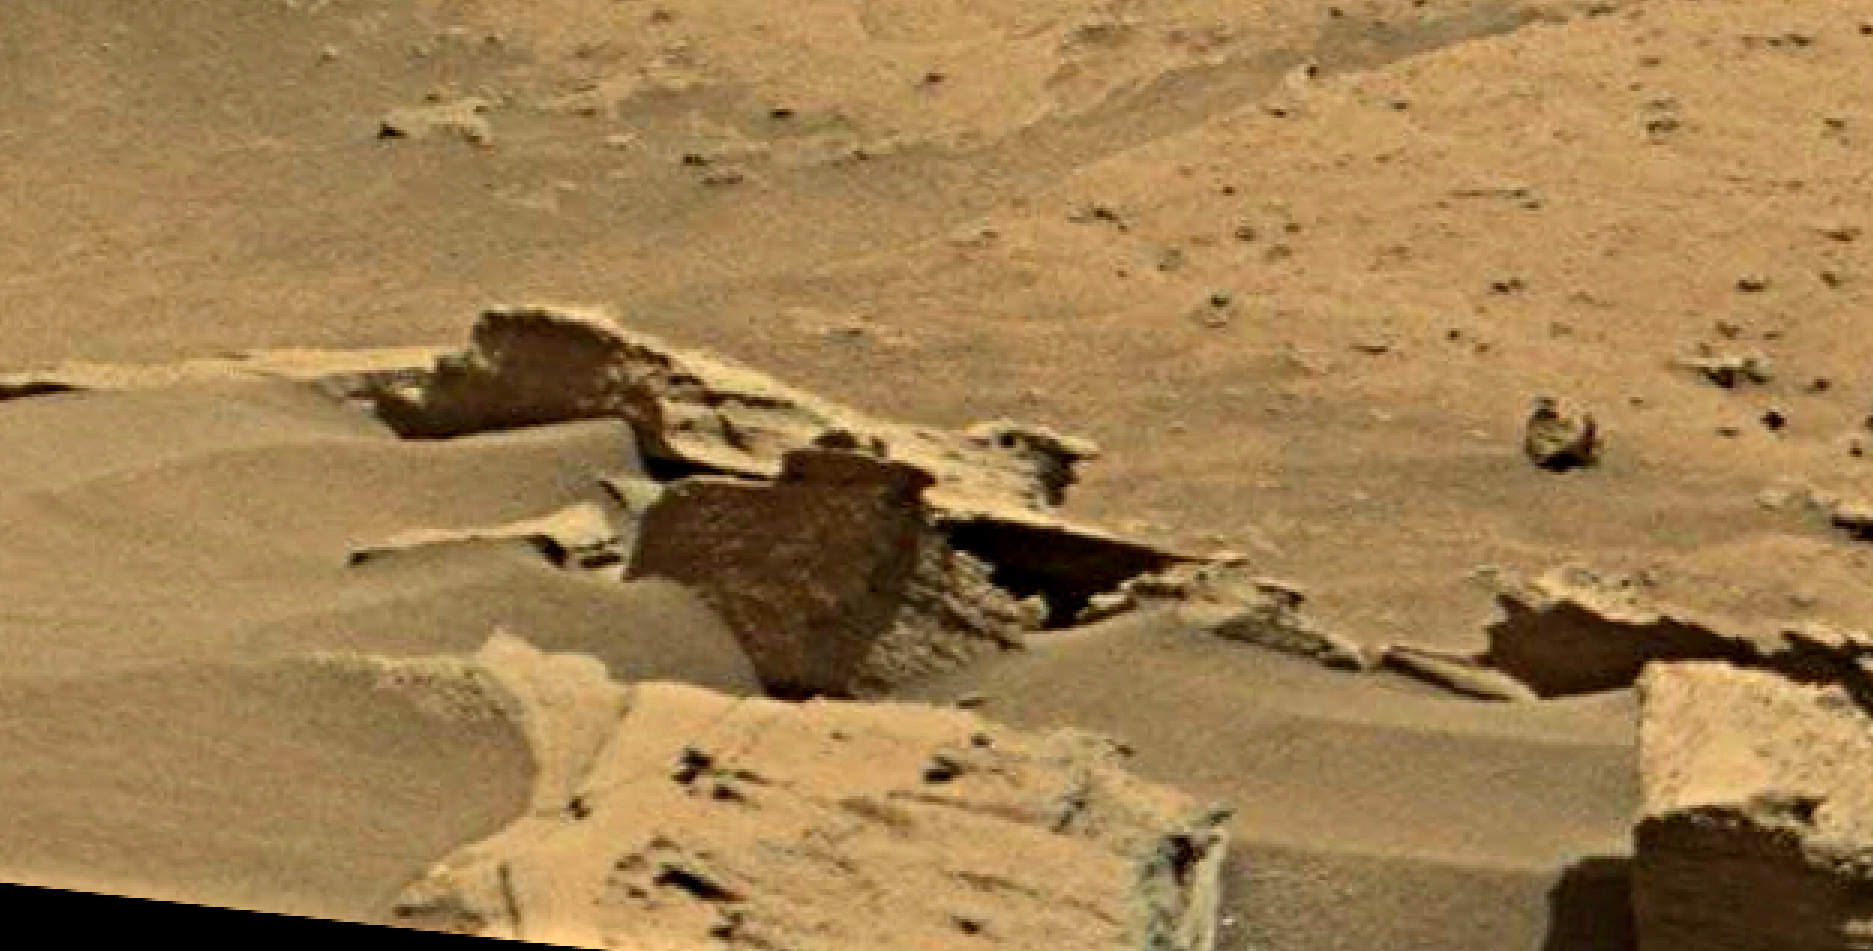 mars sol 1346 anomaly-artifacts 1 was life on mars